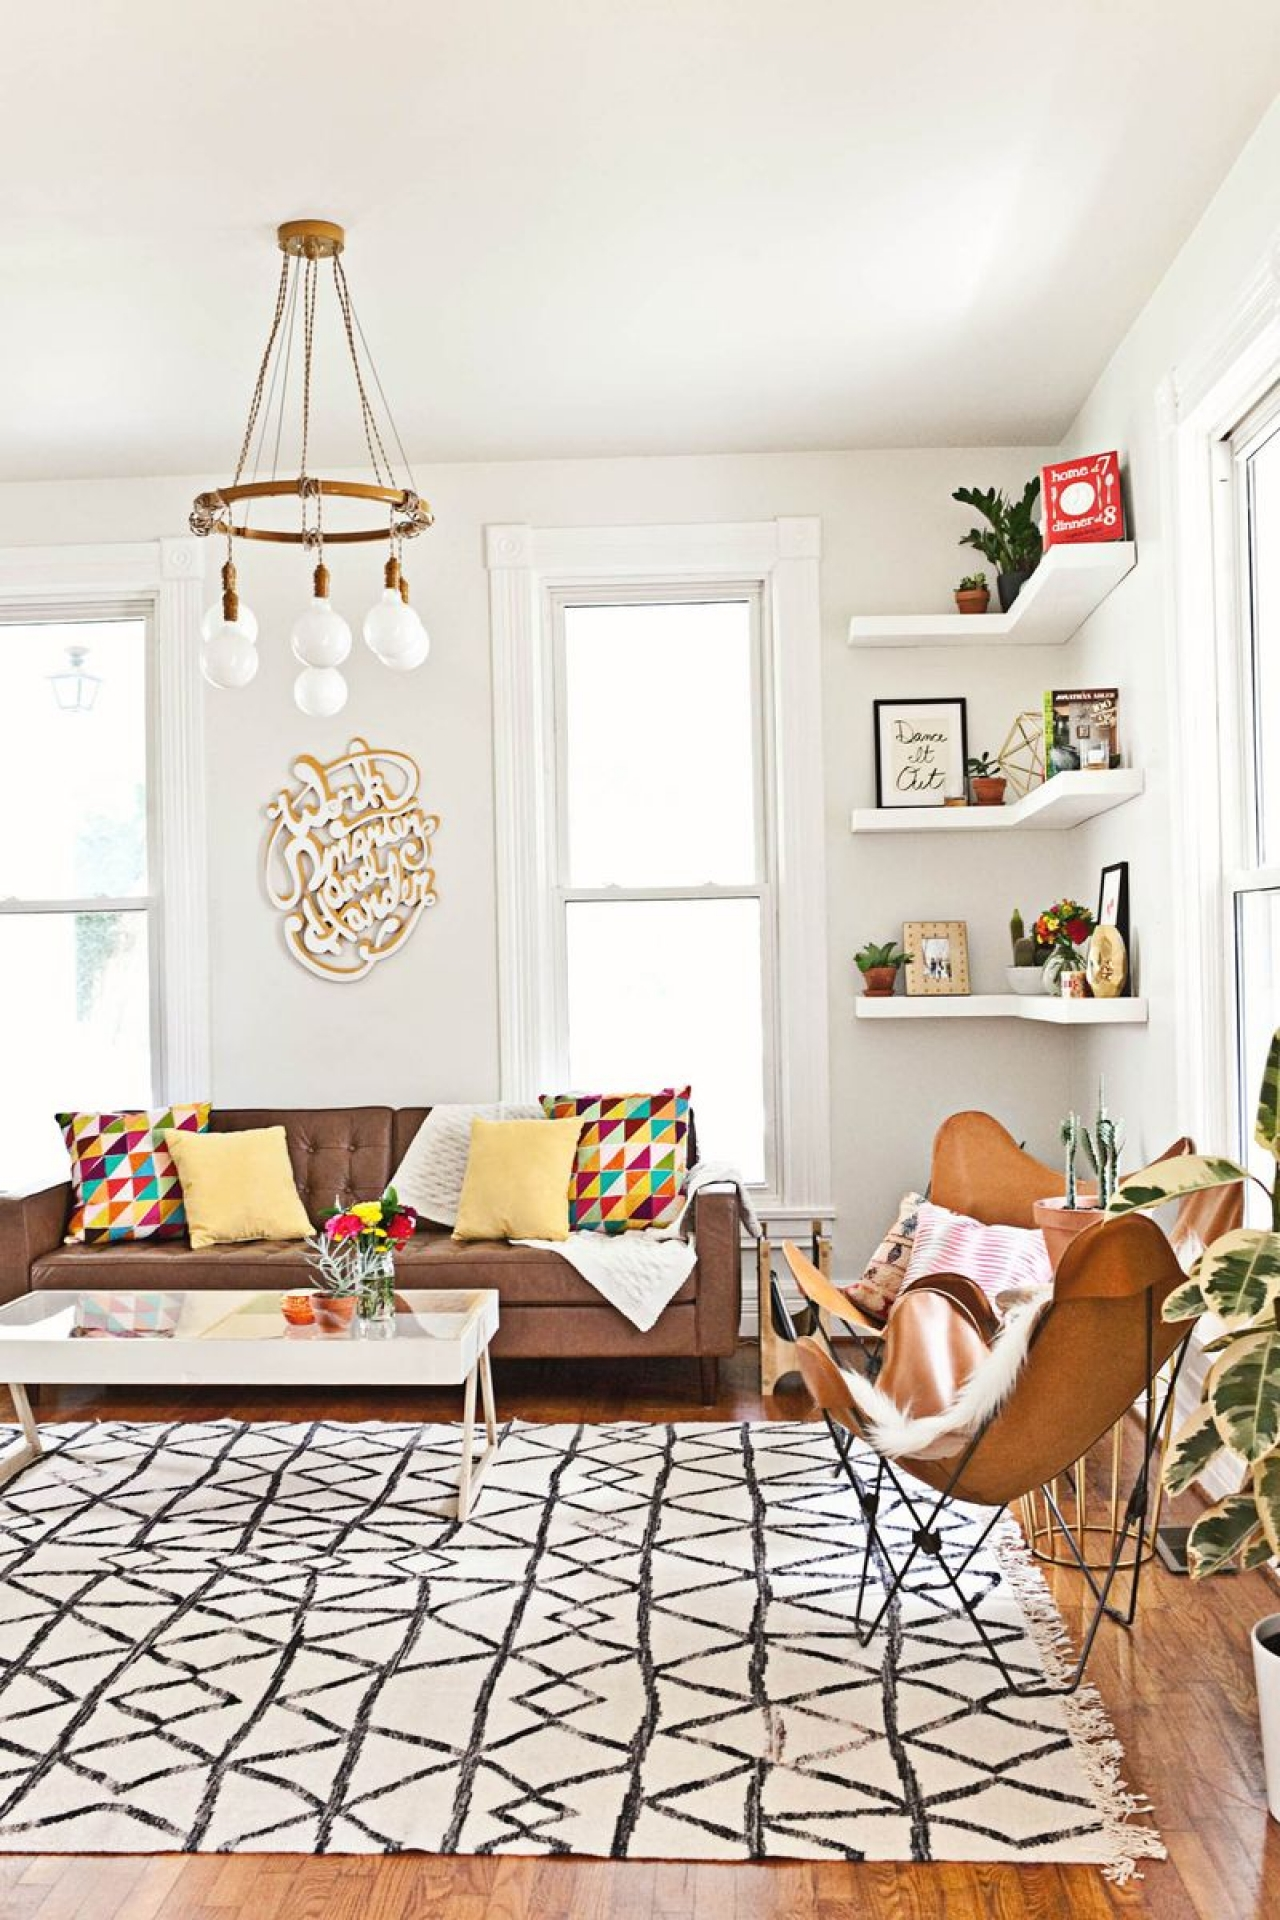 One Room, Three Looks: A Boho-Inspired Living Room - The Accent™